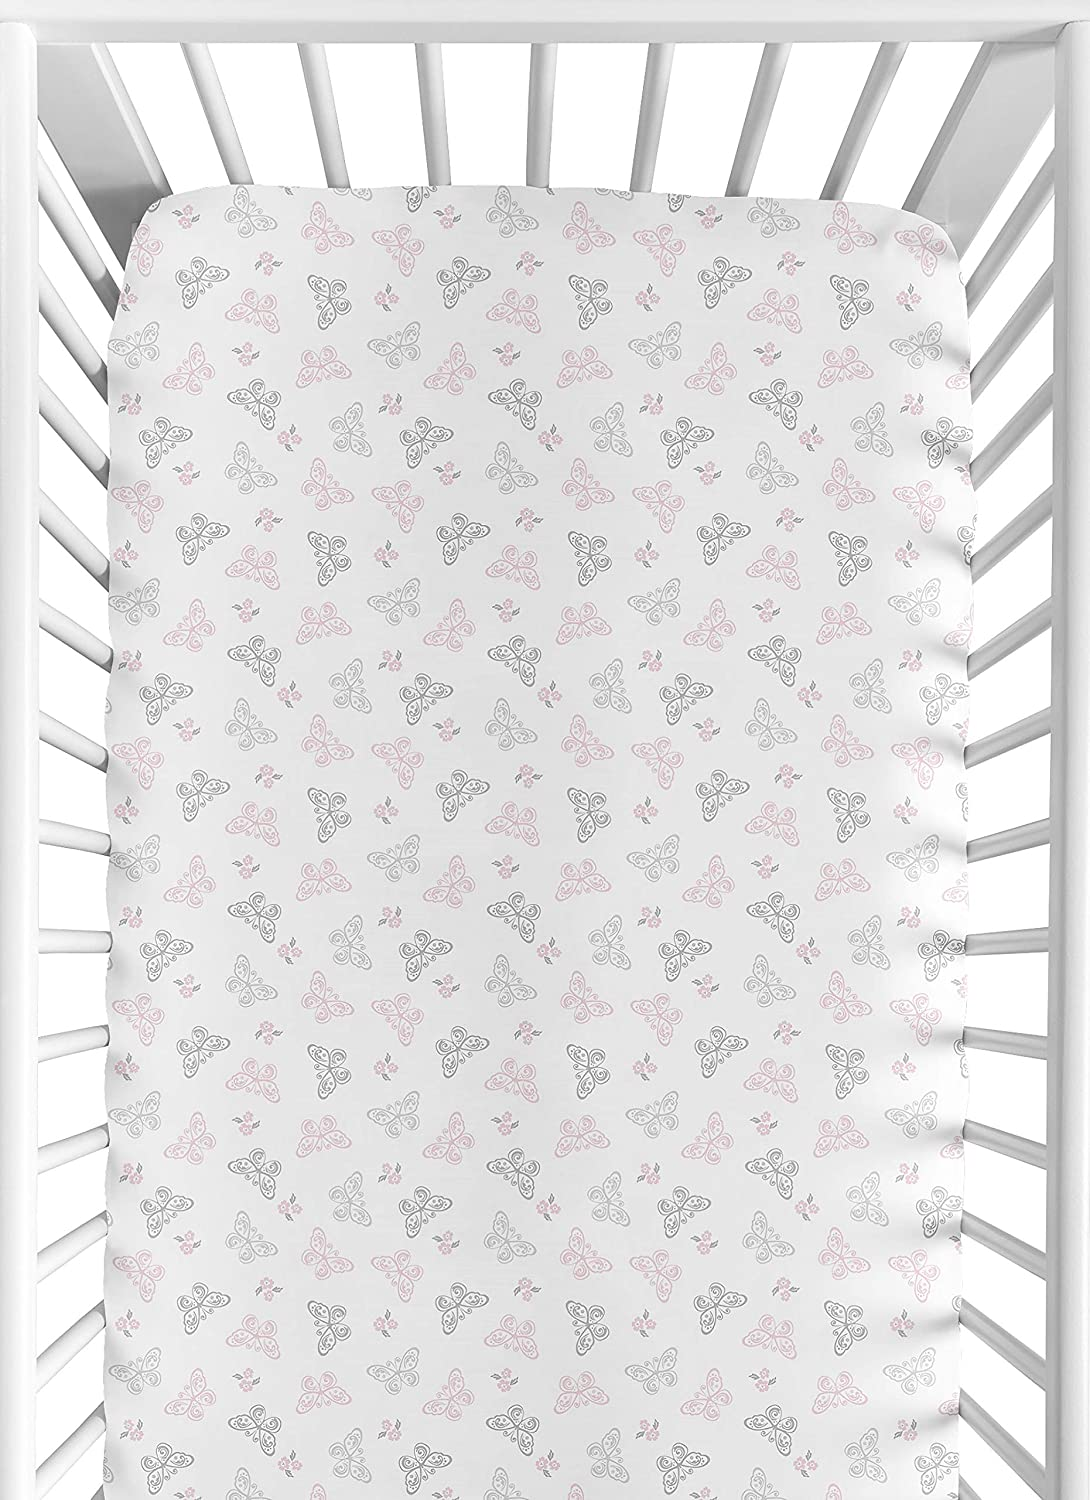 Sweet Jojo Designs Fitted Crib Sheet for Shabby Chic Alexa Baby/Toddler Bedding - Butterfly Print